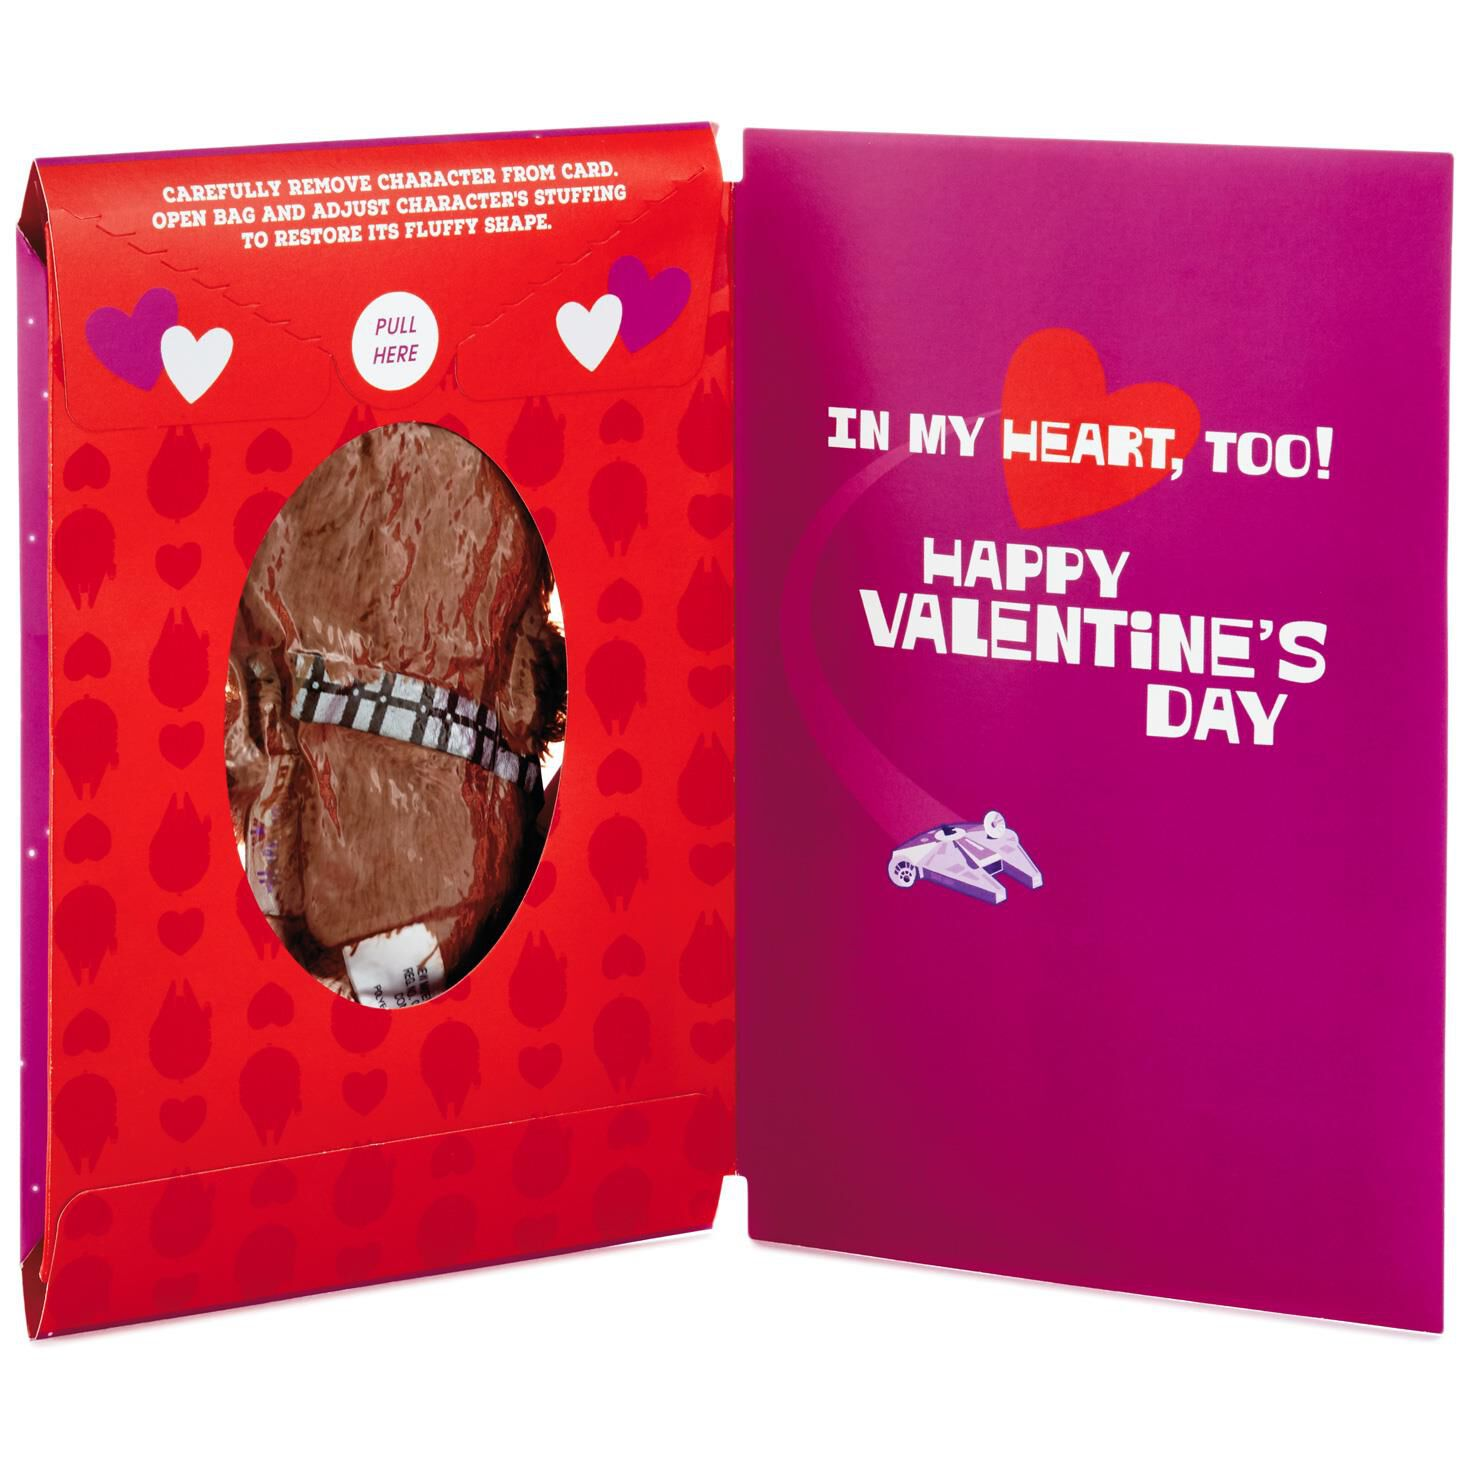 ... Itty Bittys® Star Wars™ Chewbacca™ Valentineu0027s Day Card With Stuffed  Animal